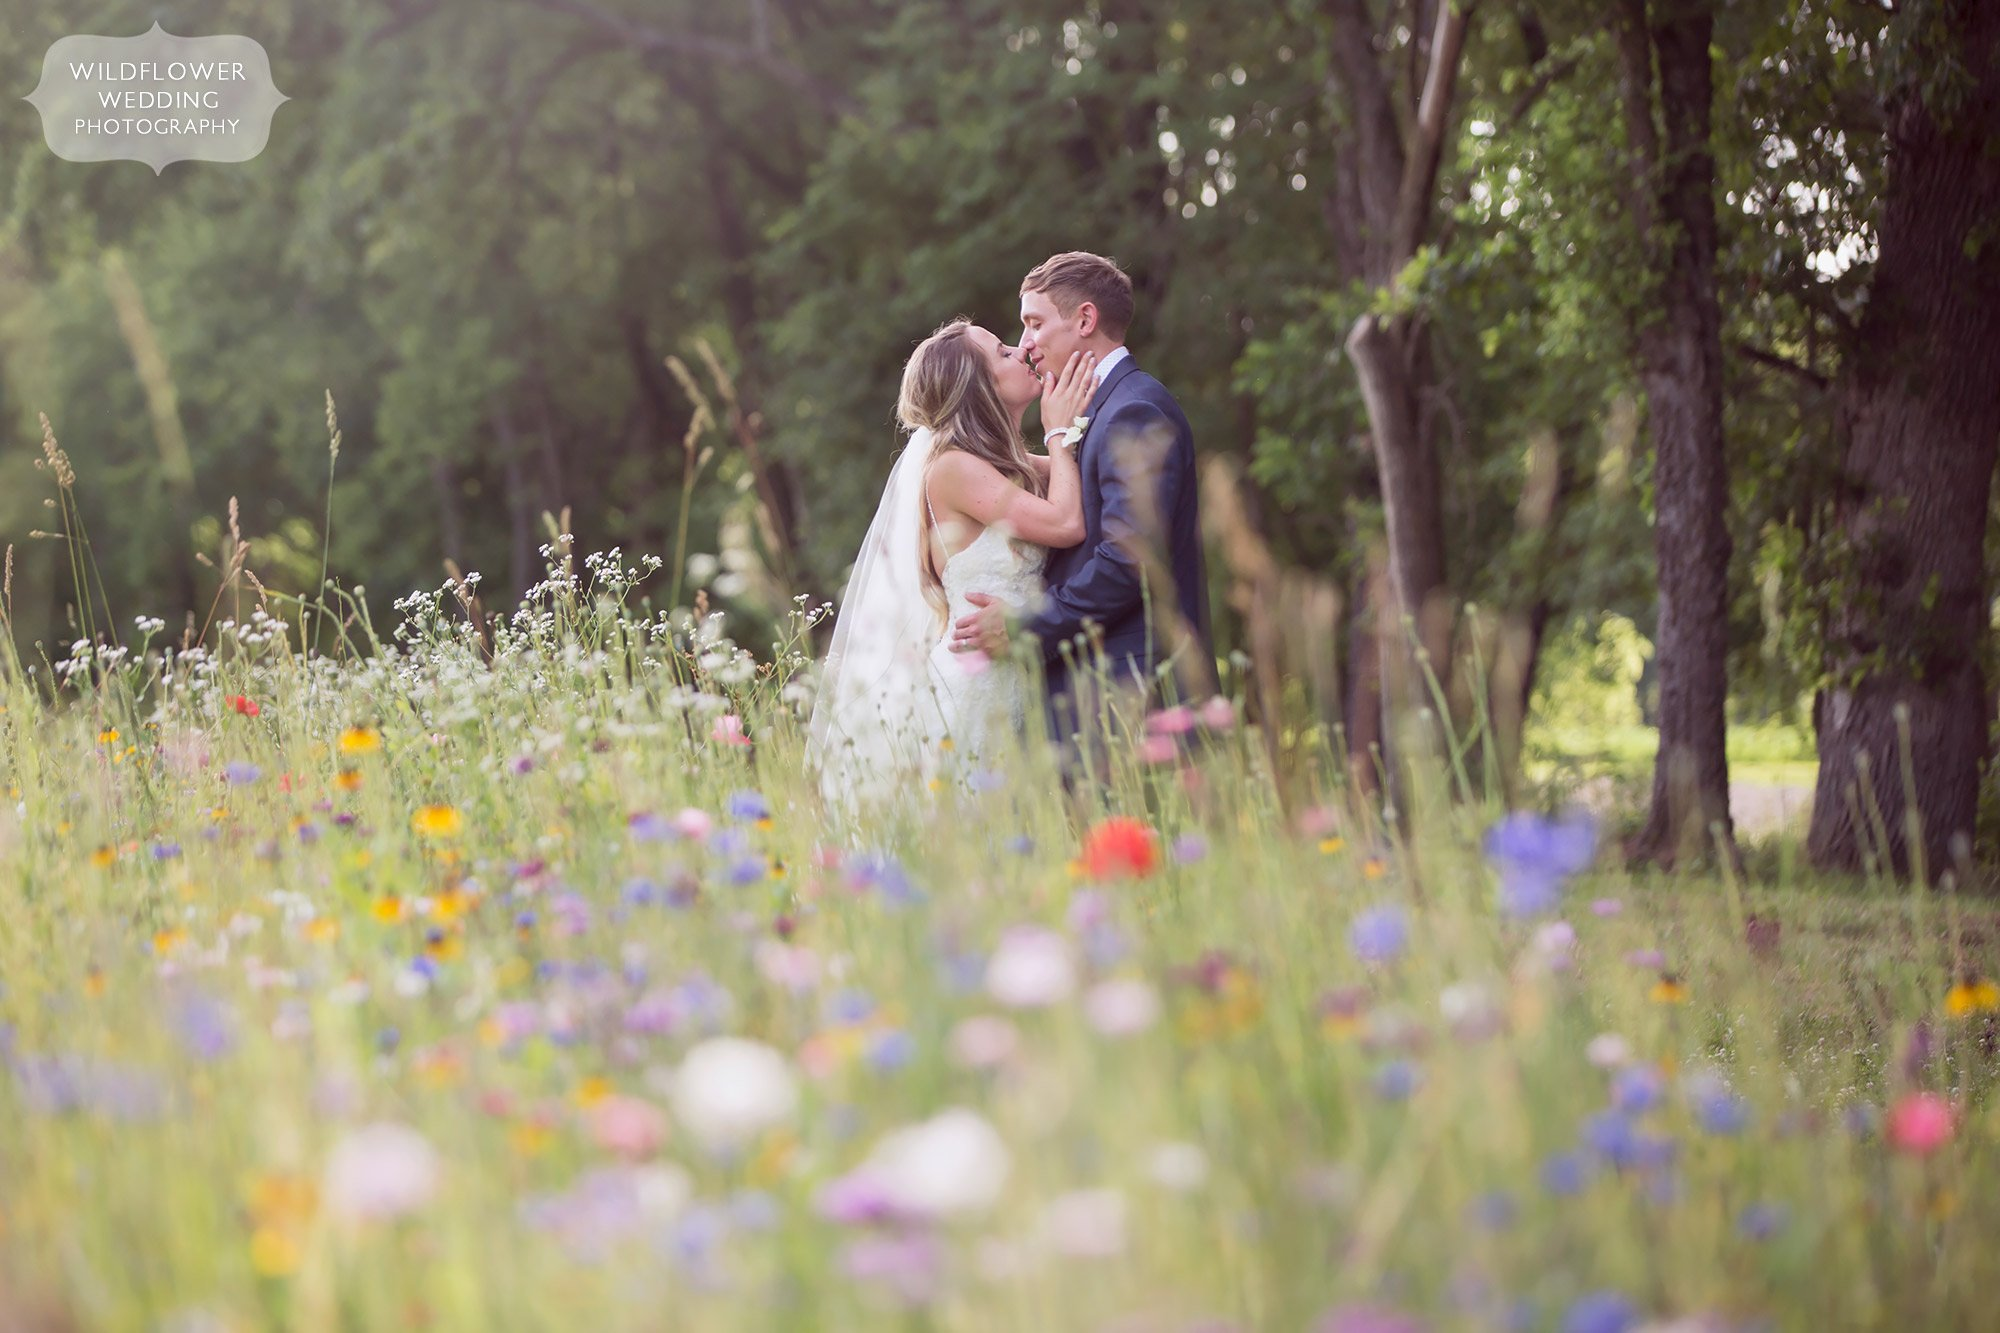 The bride and groom in a sexy kiss at this country wedding in a field of flowers at their Kempker's Back 40 barn wedding.